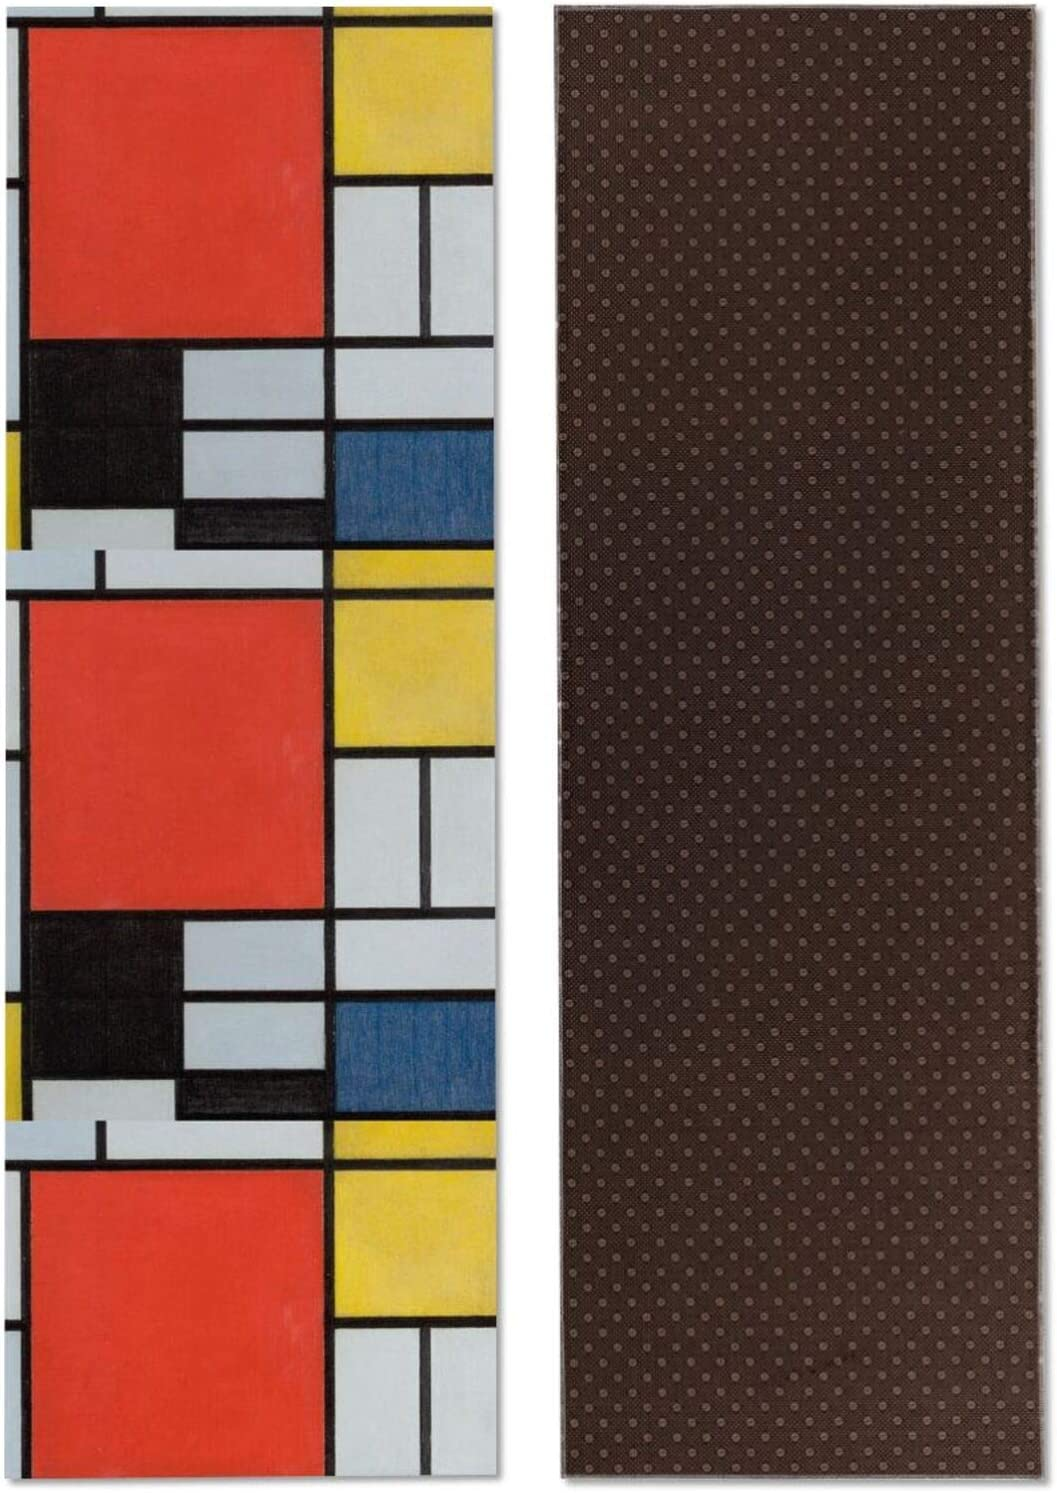 Pro Yoga Mats for Women Composition Blue In Yellow Black New Be super welcome item Red And